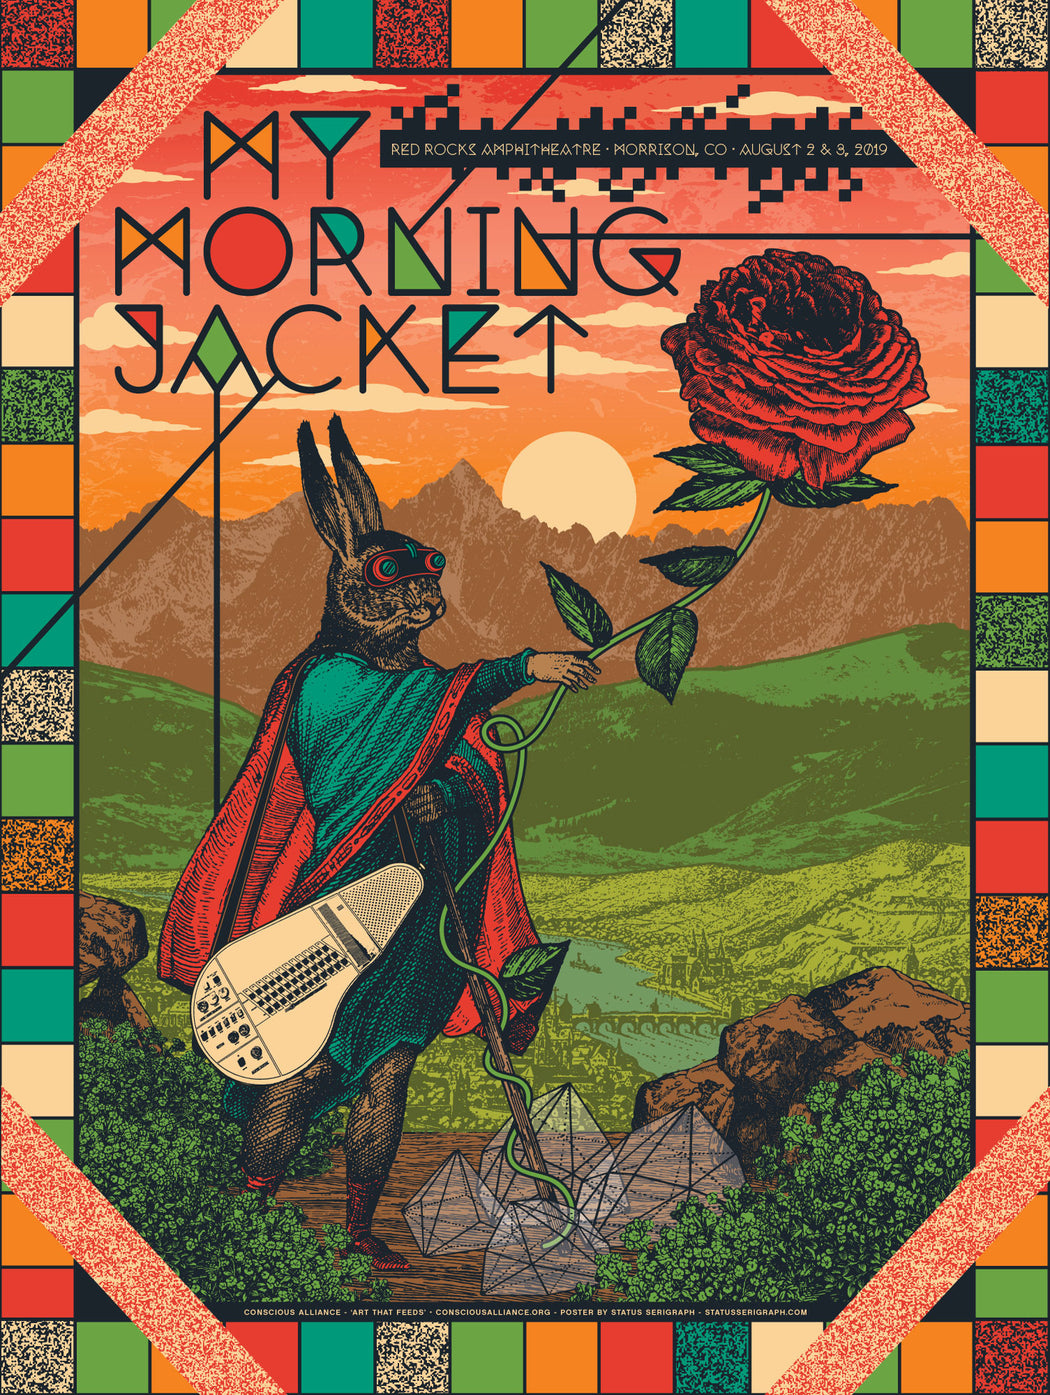 My Morning Jacket Morrison - 2019